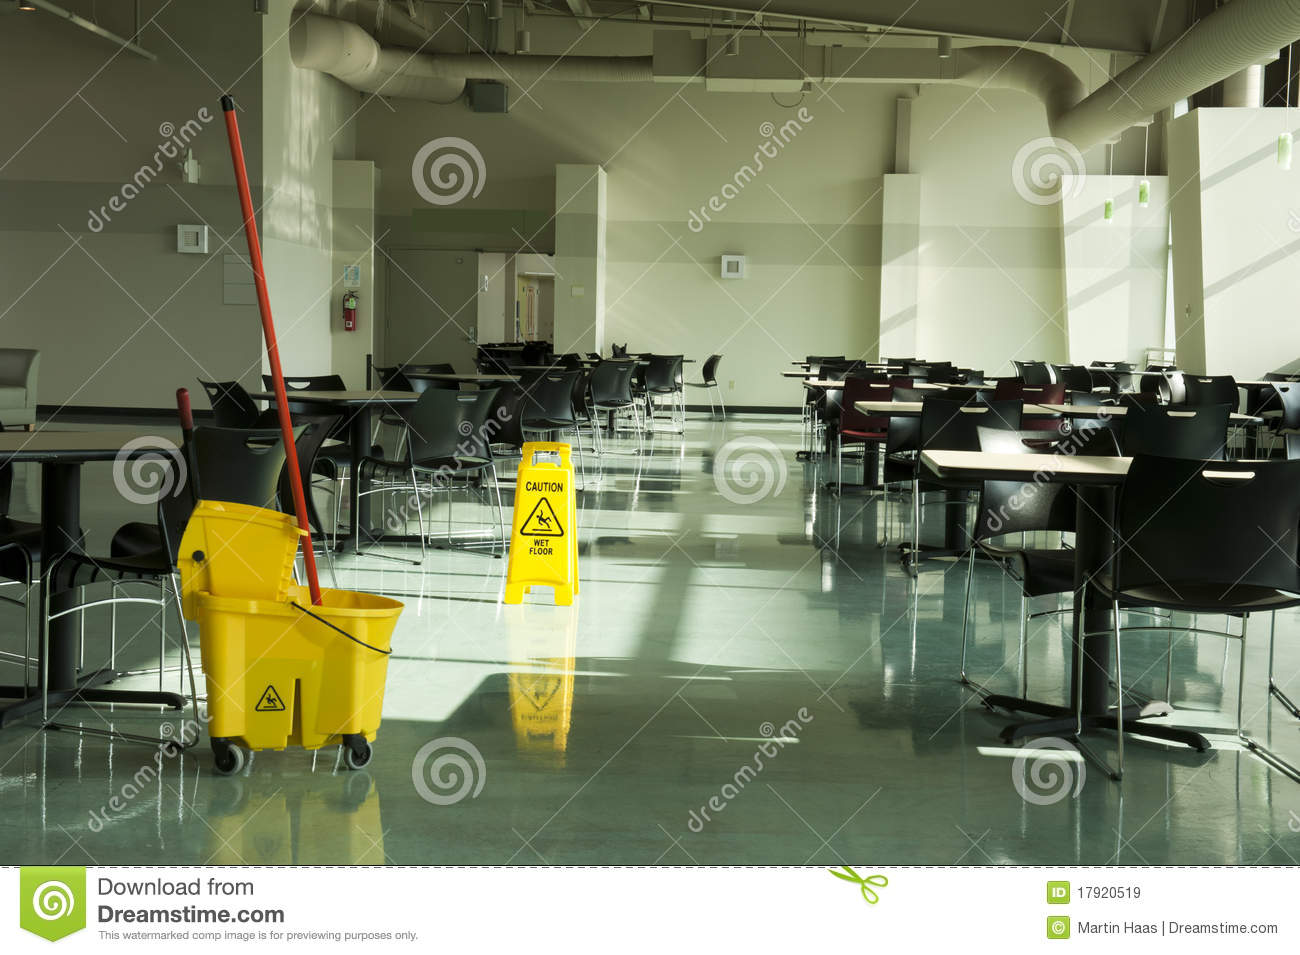 Mop bucket caution sign cafe tables